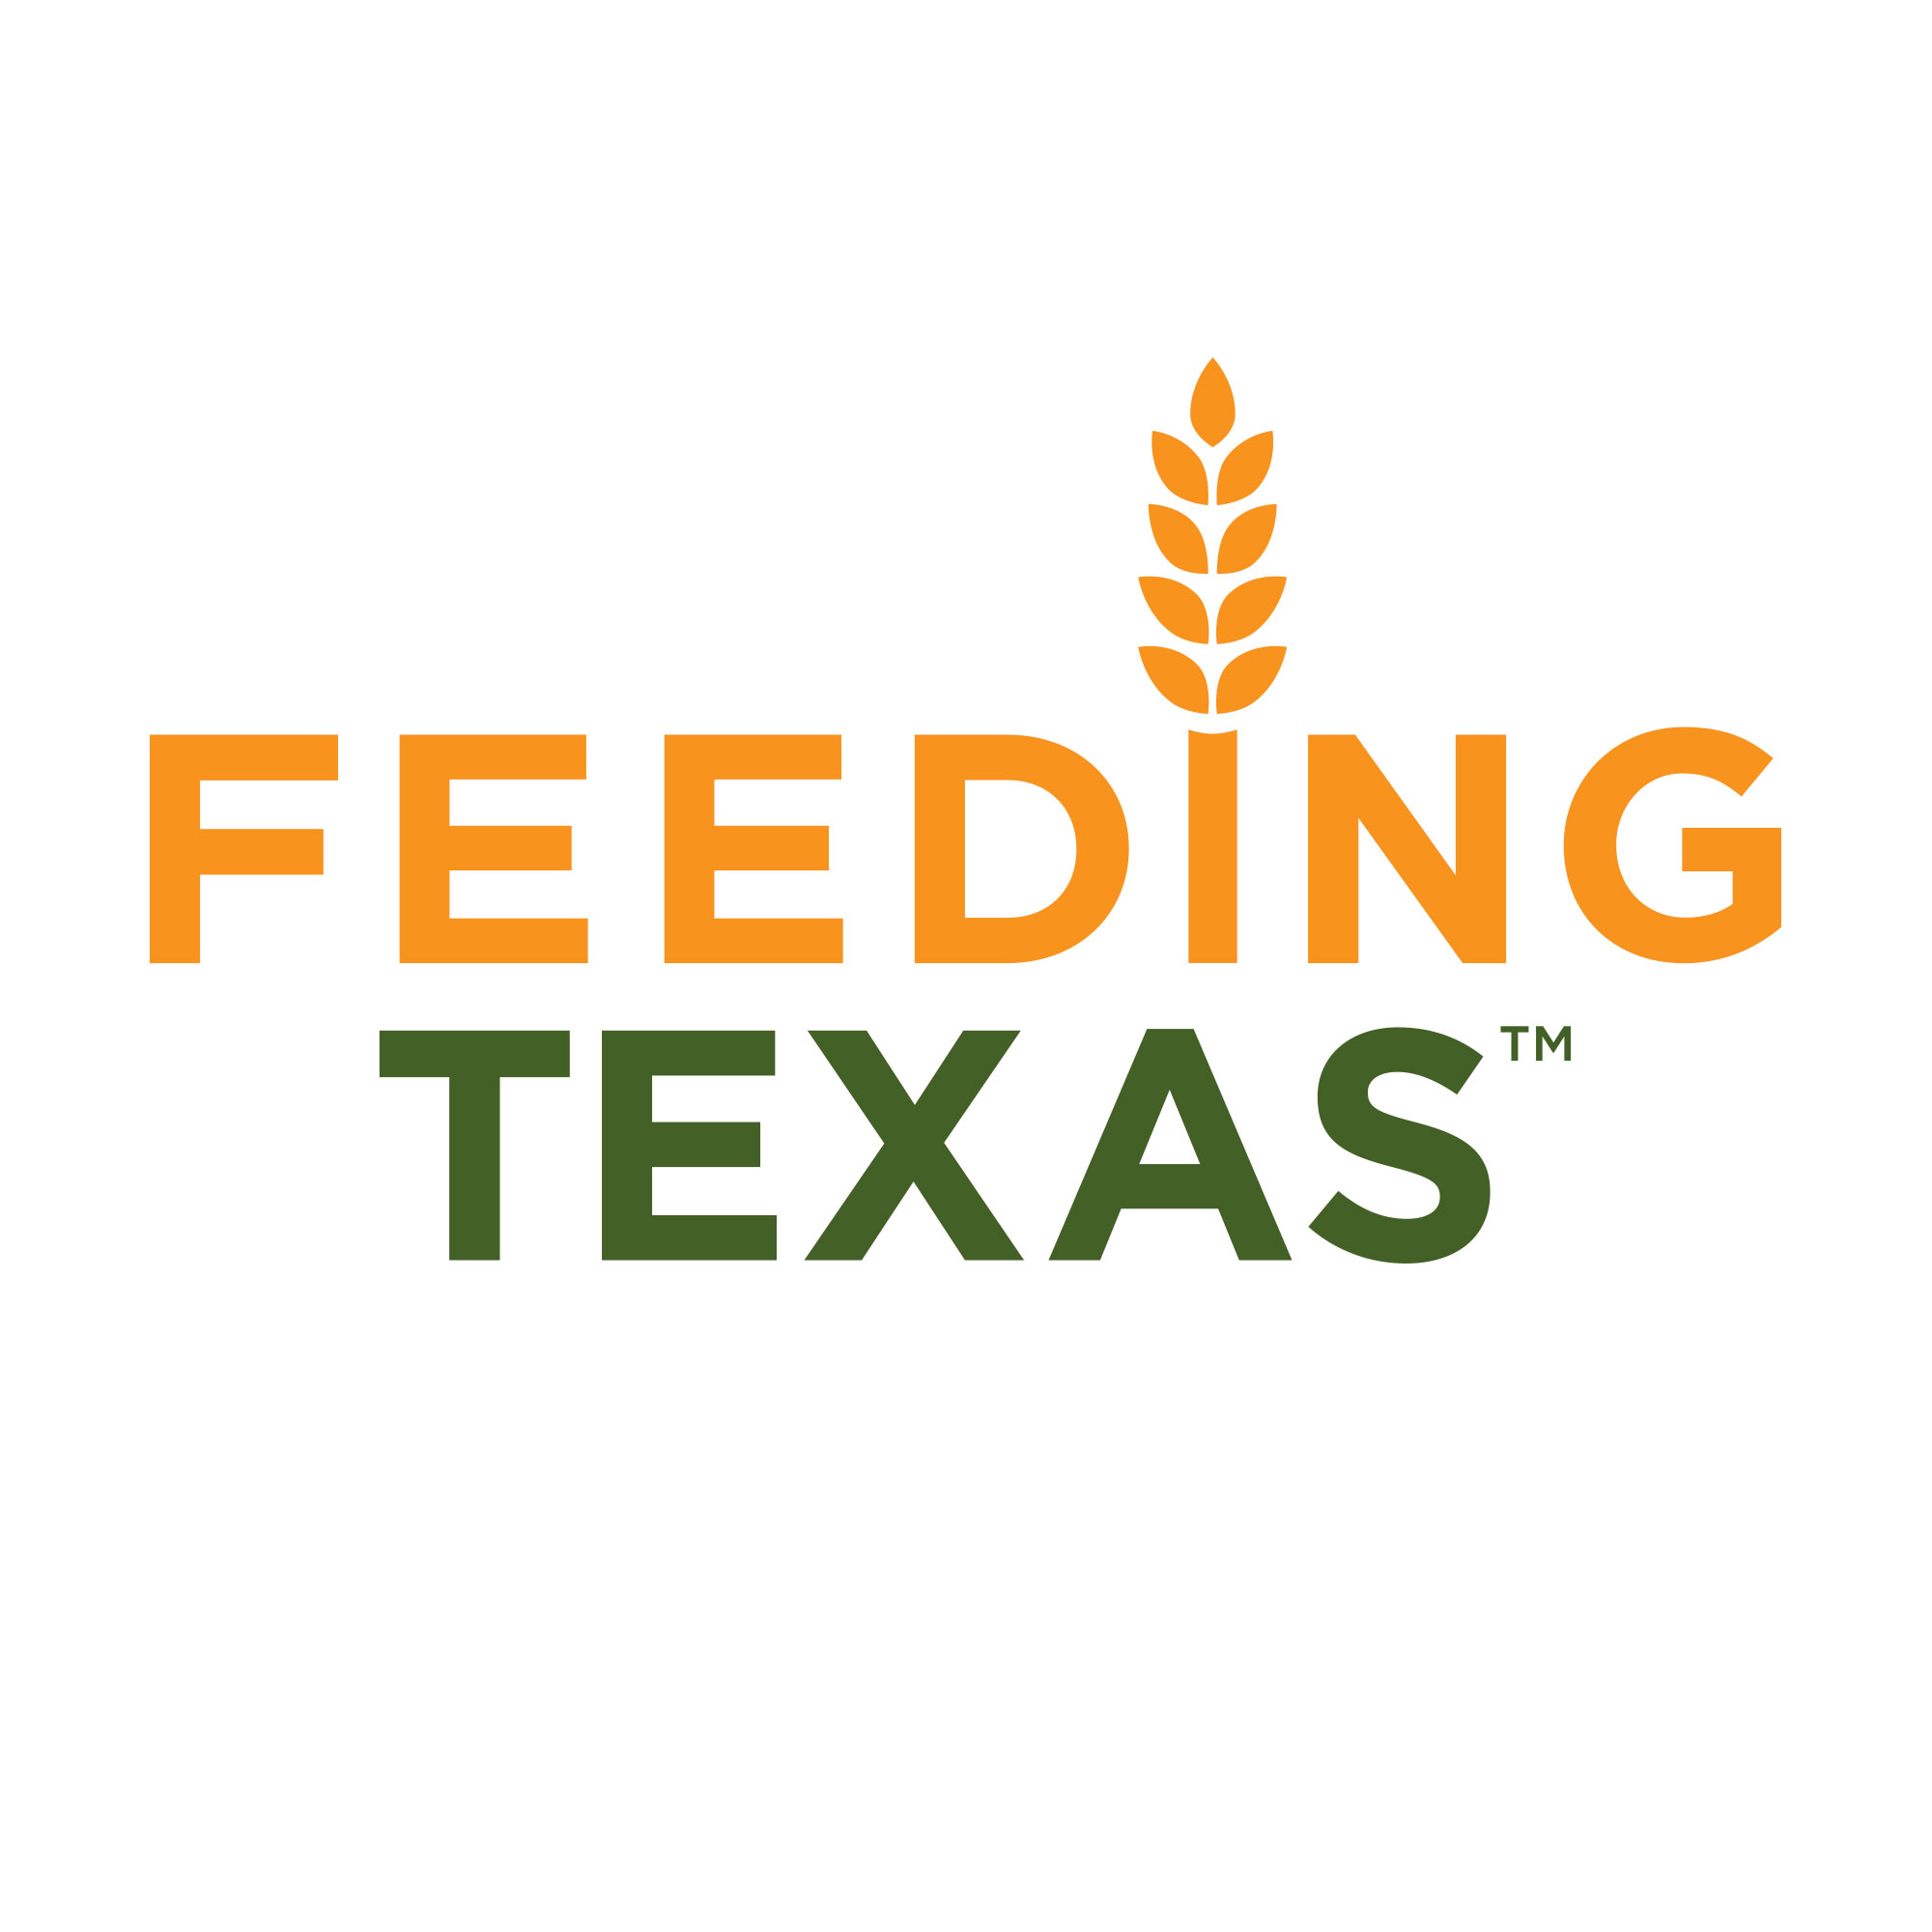 Gallant_OurClients_feedingtexas.jpg